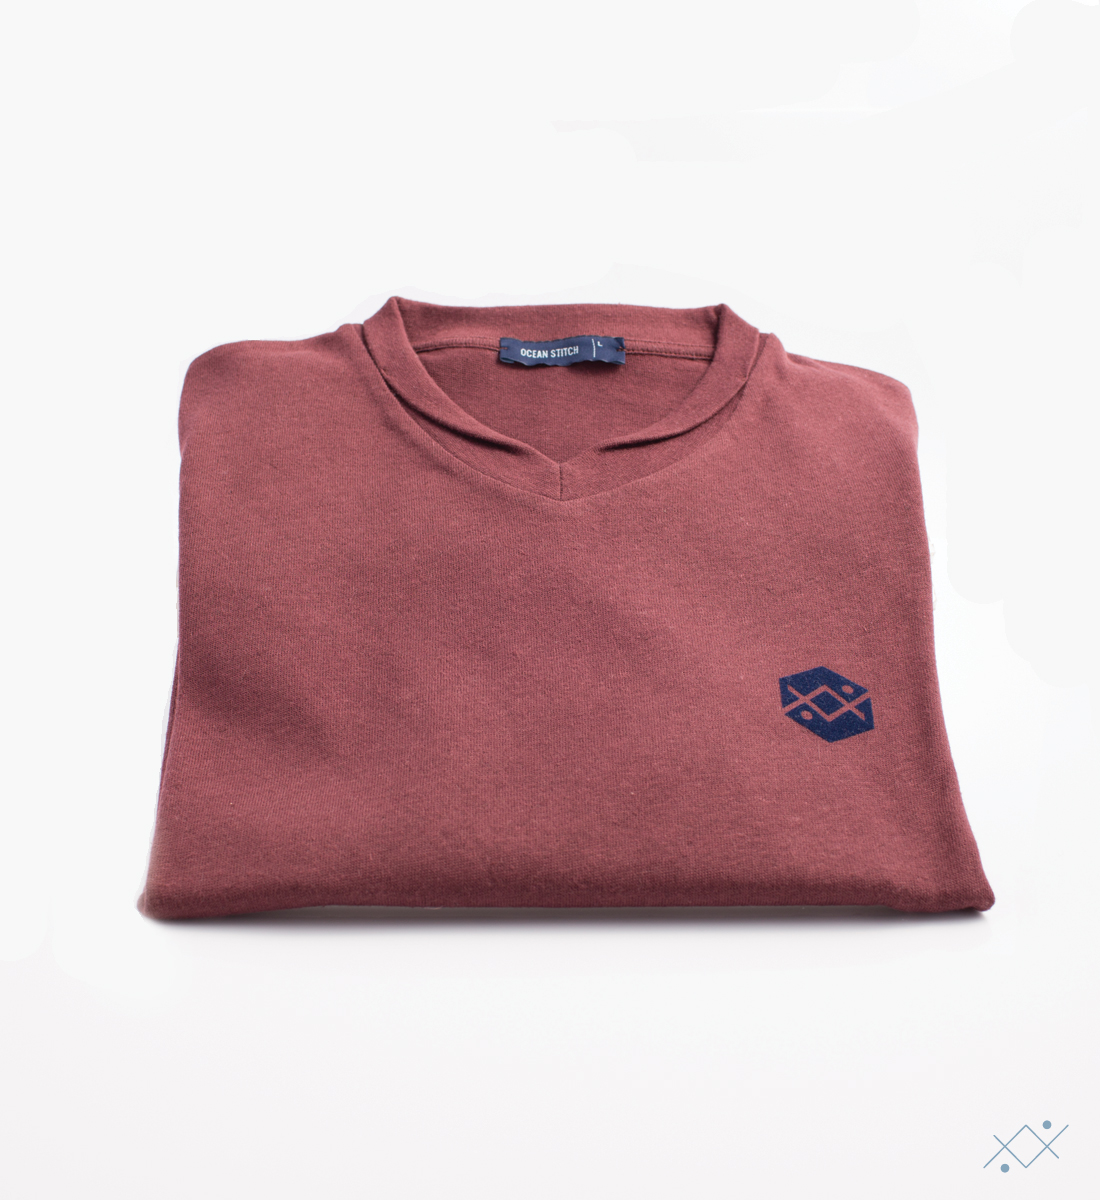 Classic bordeaux knitwear with applied velvet logo on light blue - view2